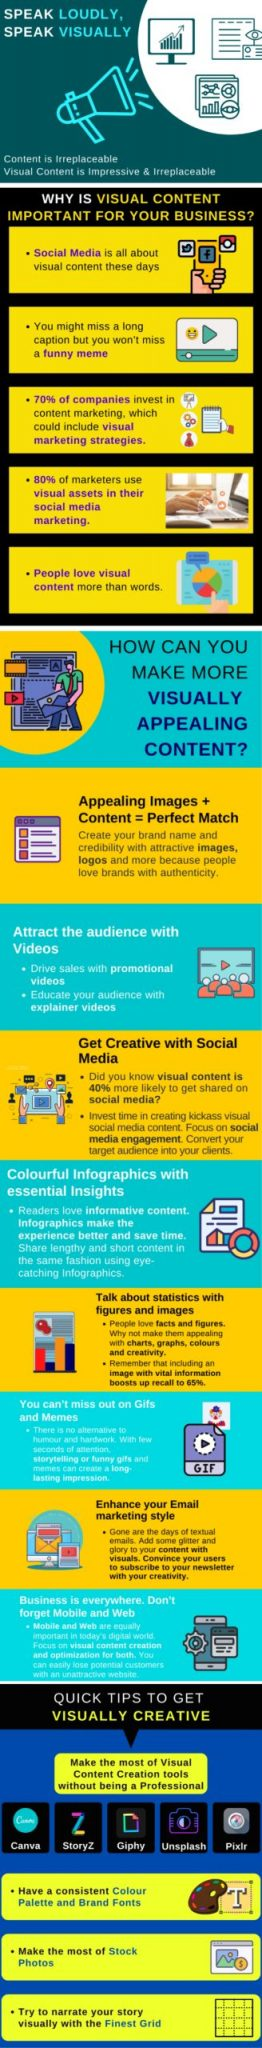 Making Infographics for visually appealing content